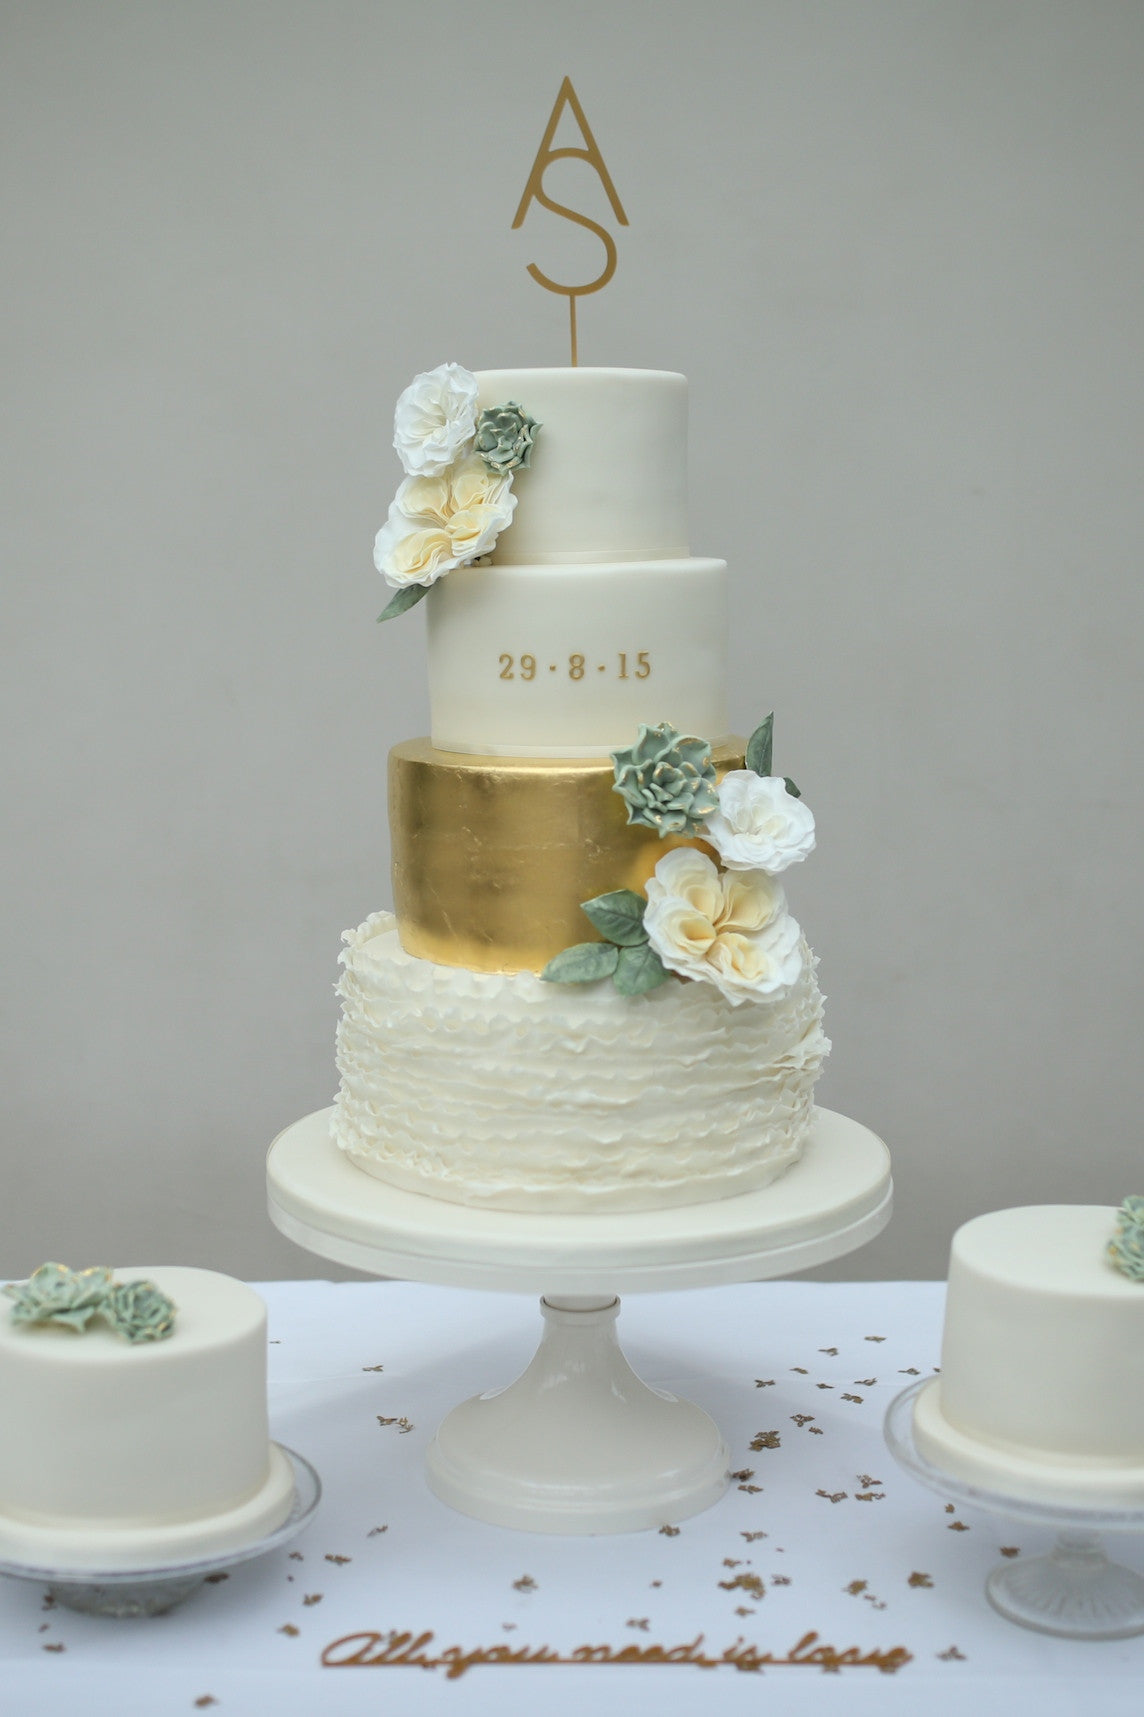 Wedding Cake with Succulents, Gold Leaf and Ruffles